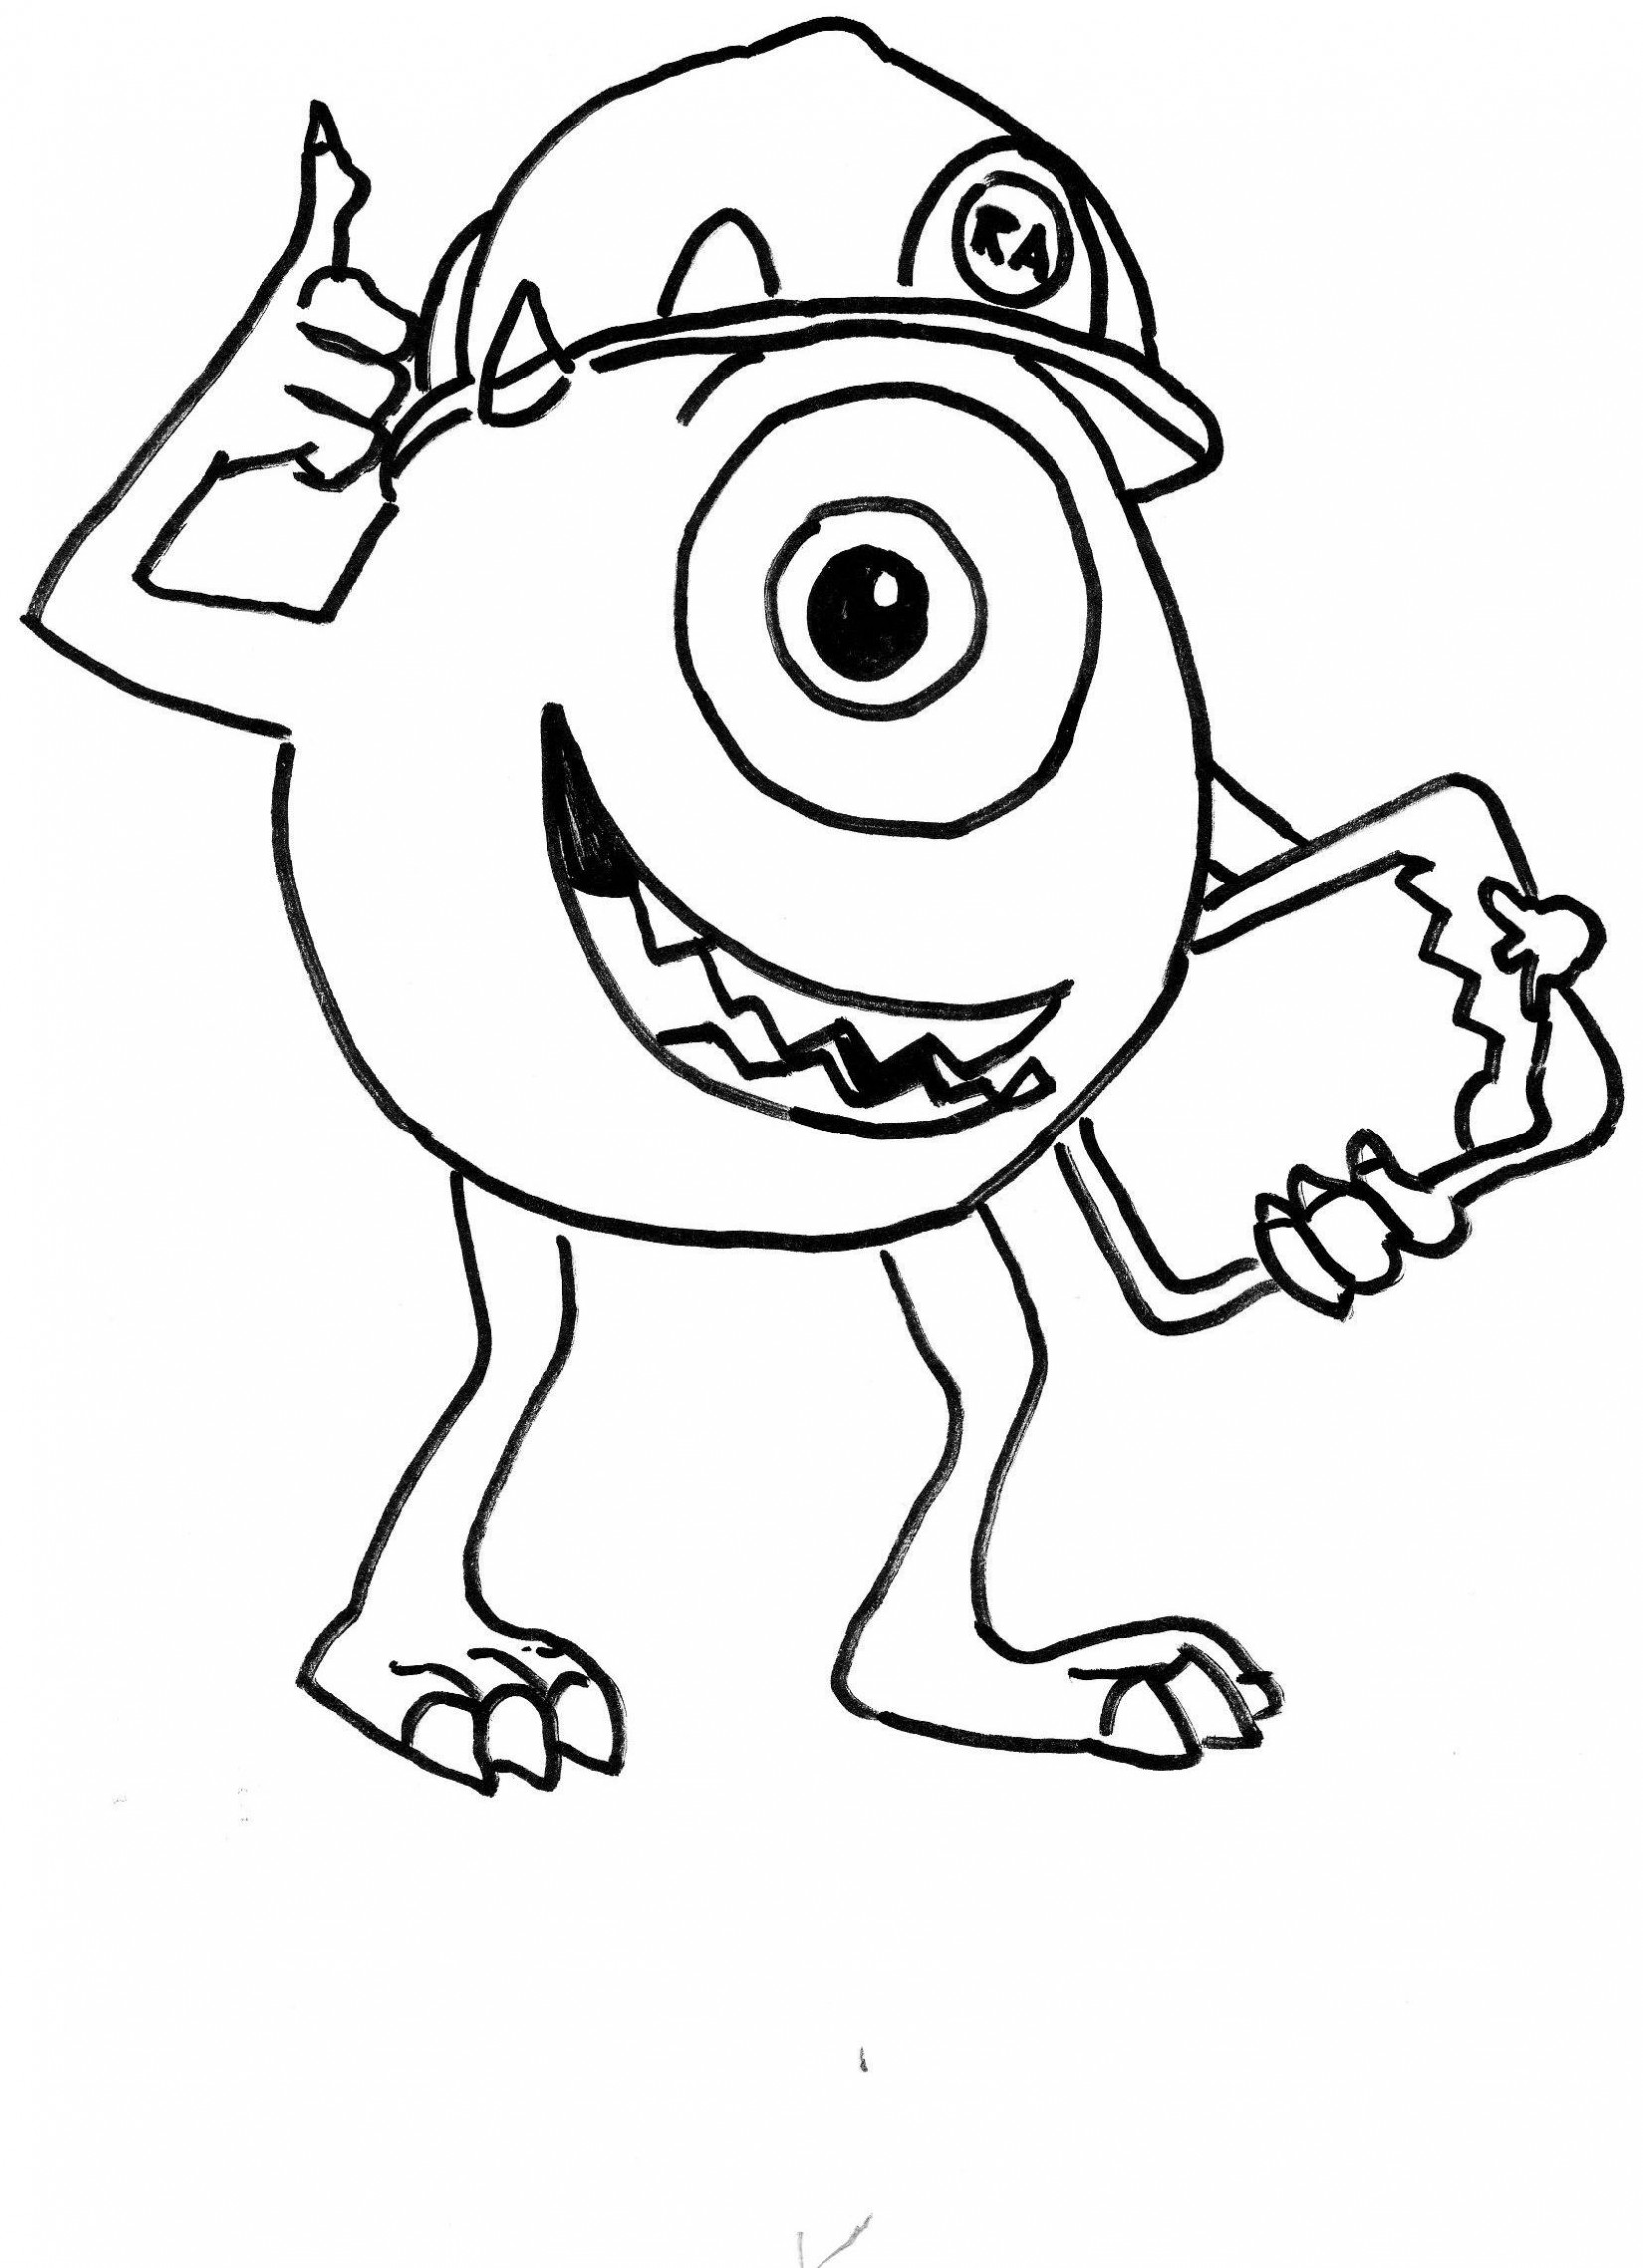 coloring pages kids boys - photo#45